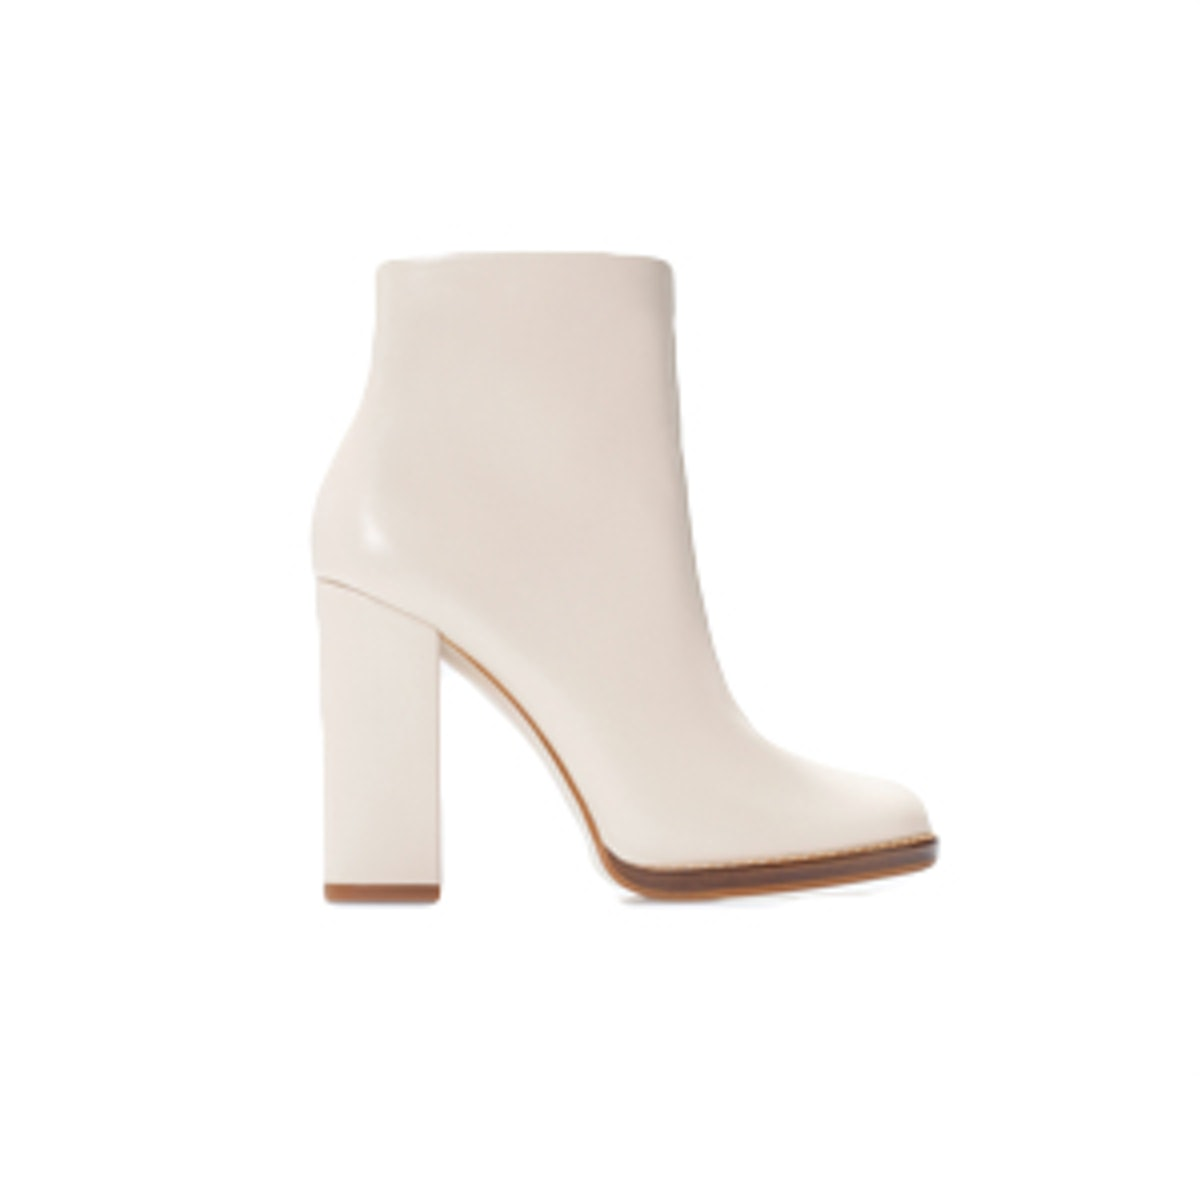 Wide-Heeled Leather Bootie